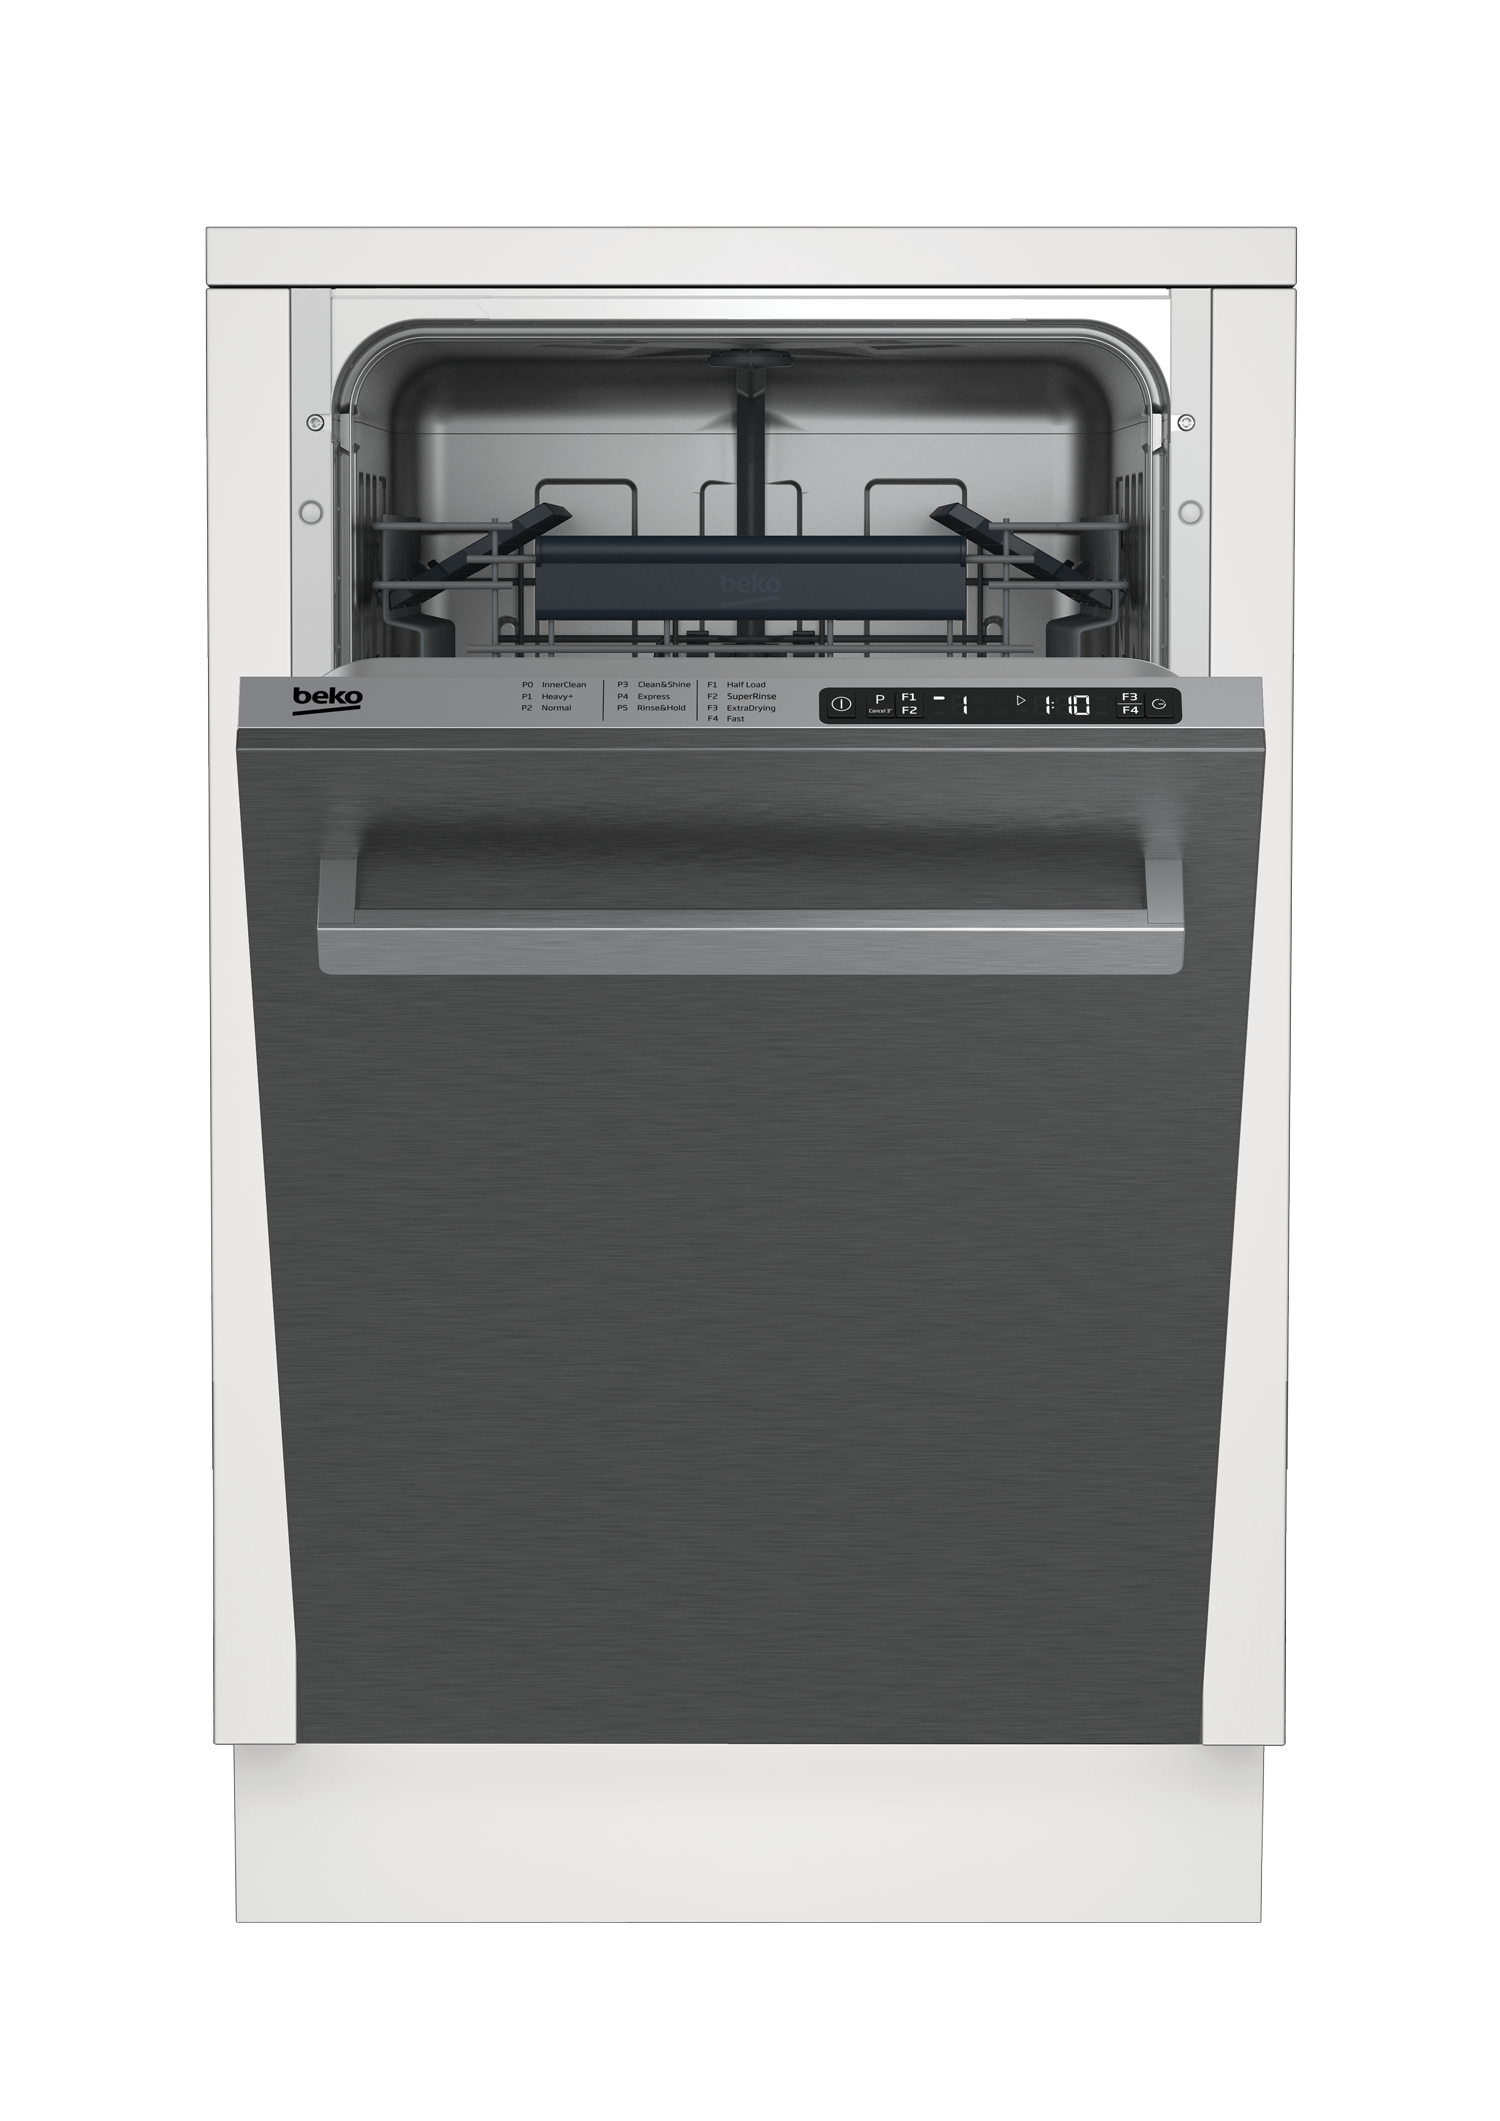 Slim Size Stainless Dishwasher, 8 place settings, 48 dBA, Top Control DDS25840X